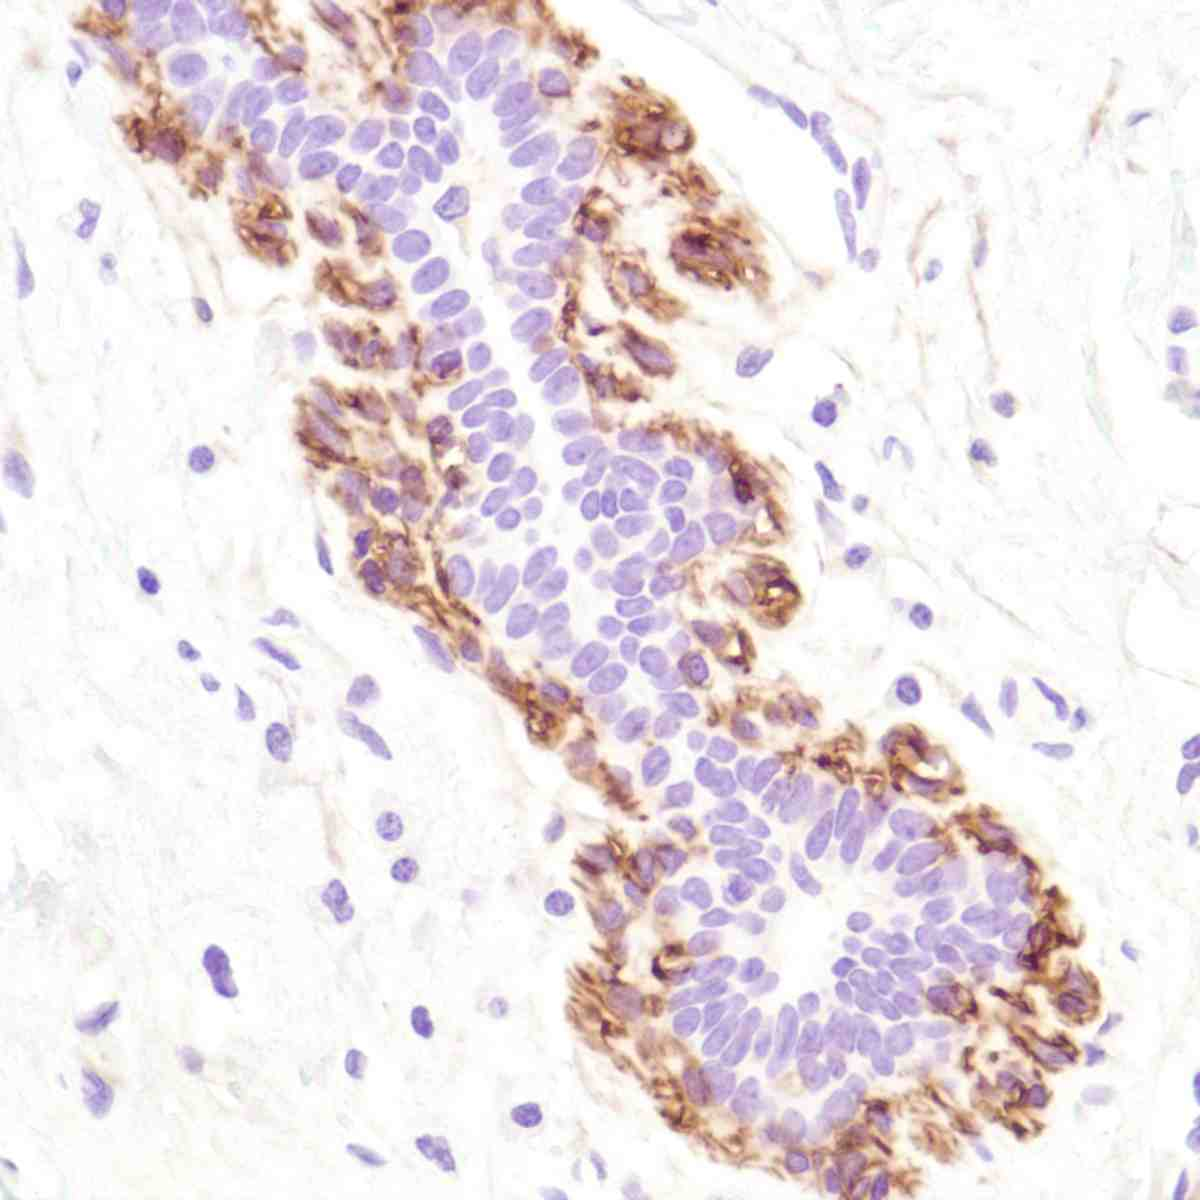 Human Breast stained with anti-CD10 antibody